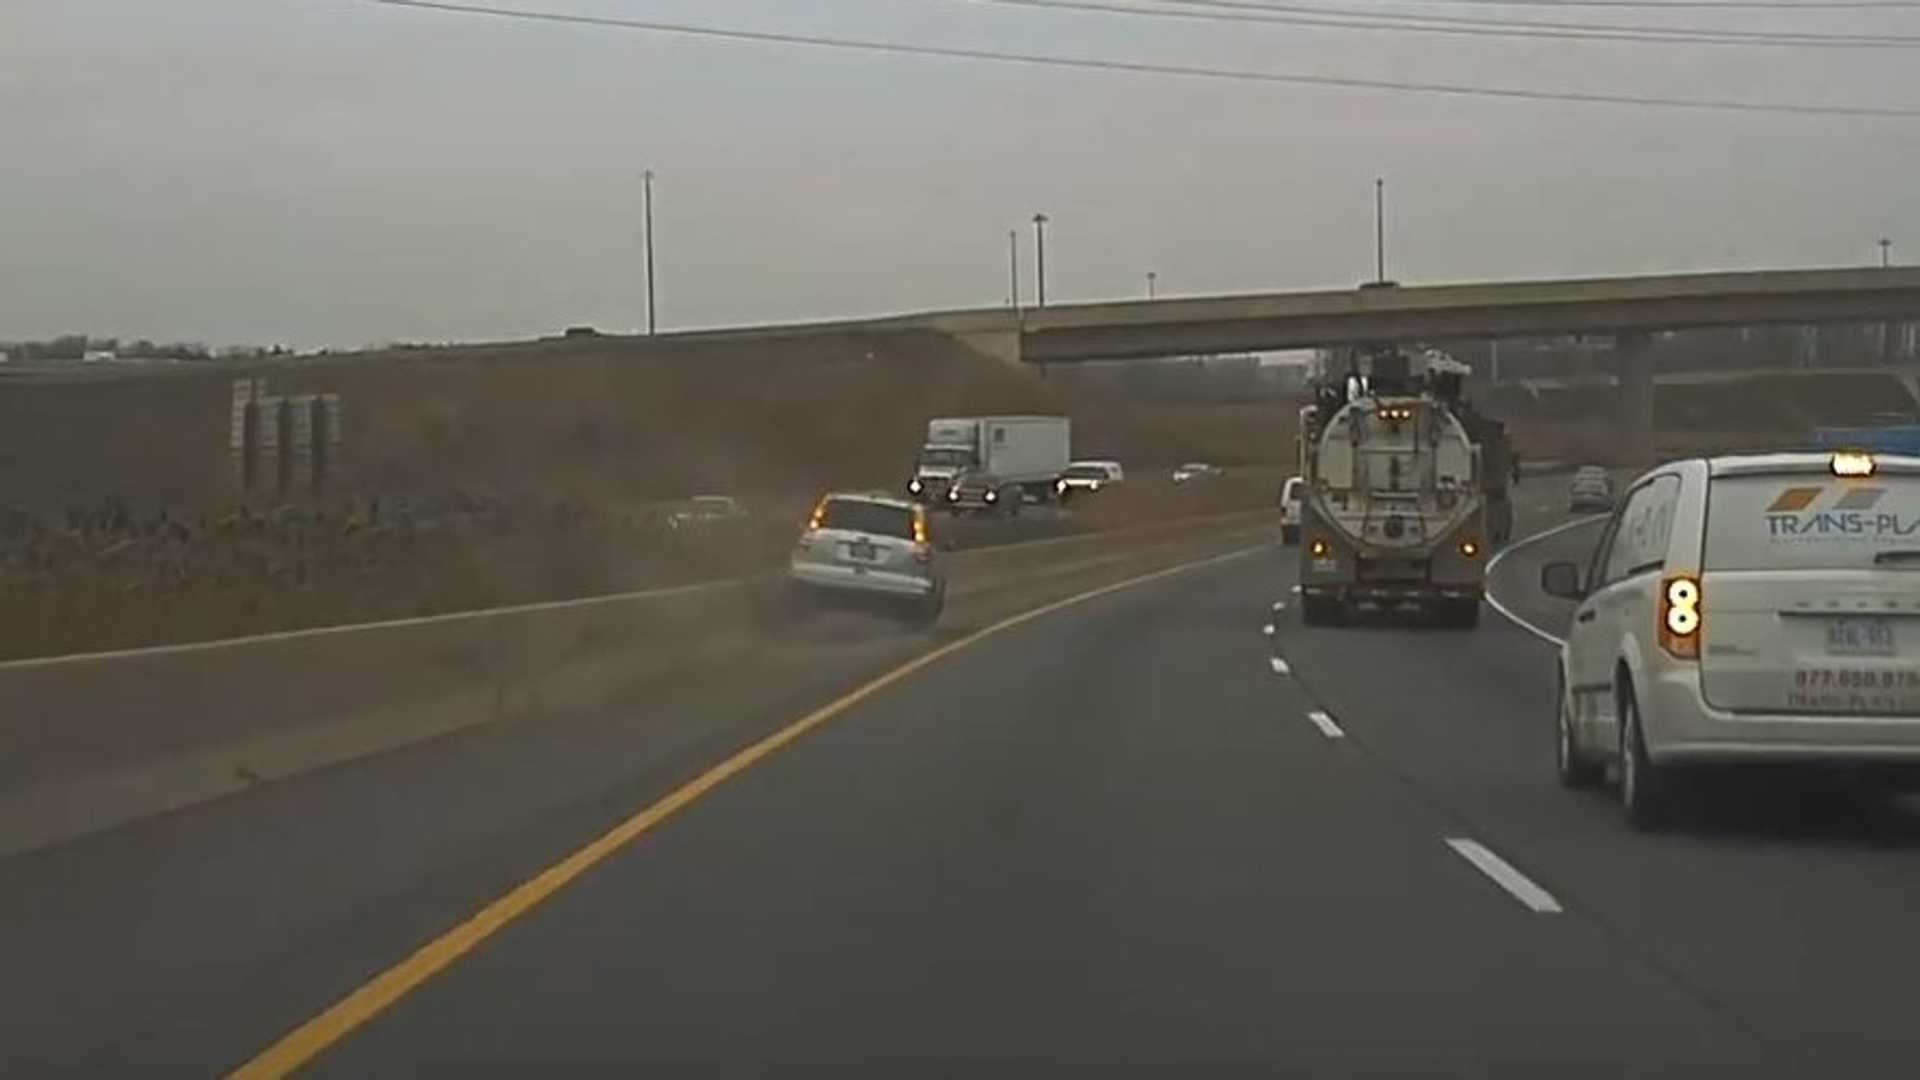 Caught On TeslaCam: Inattentive Driver Crashes Into Wall - Video